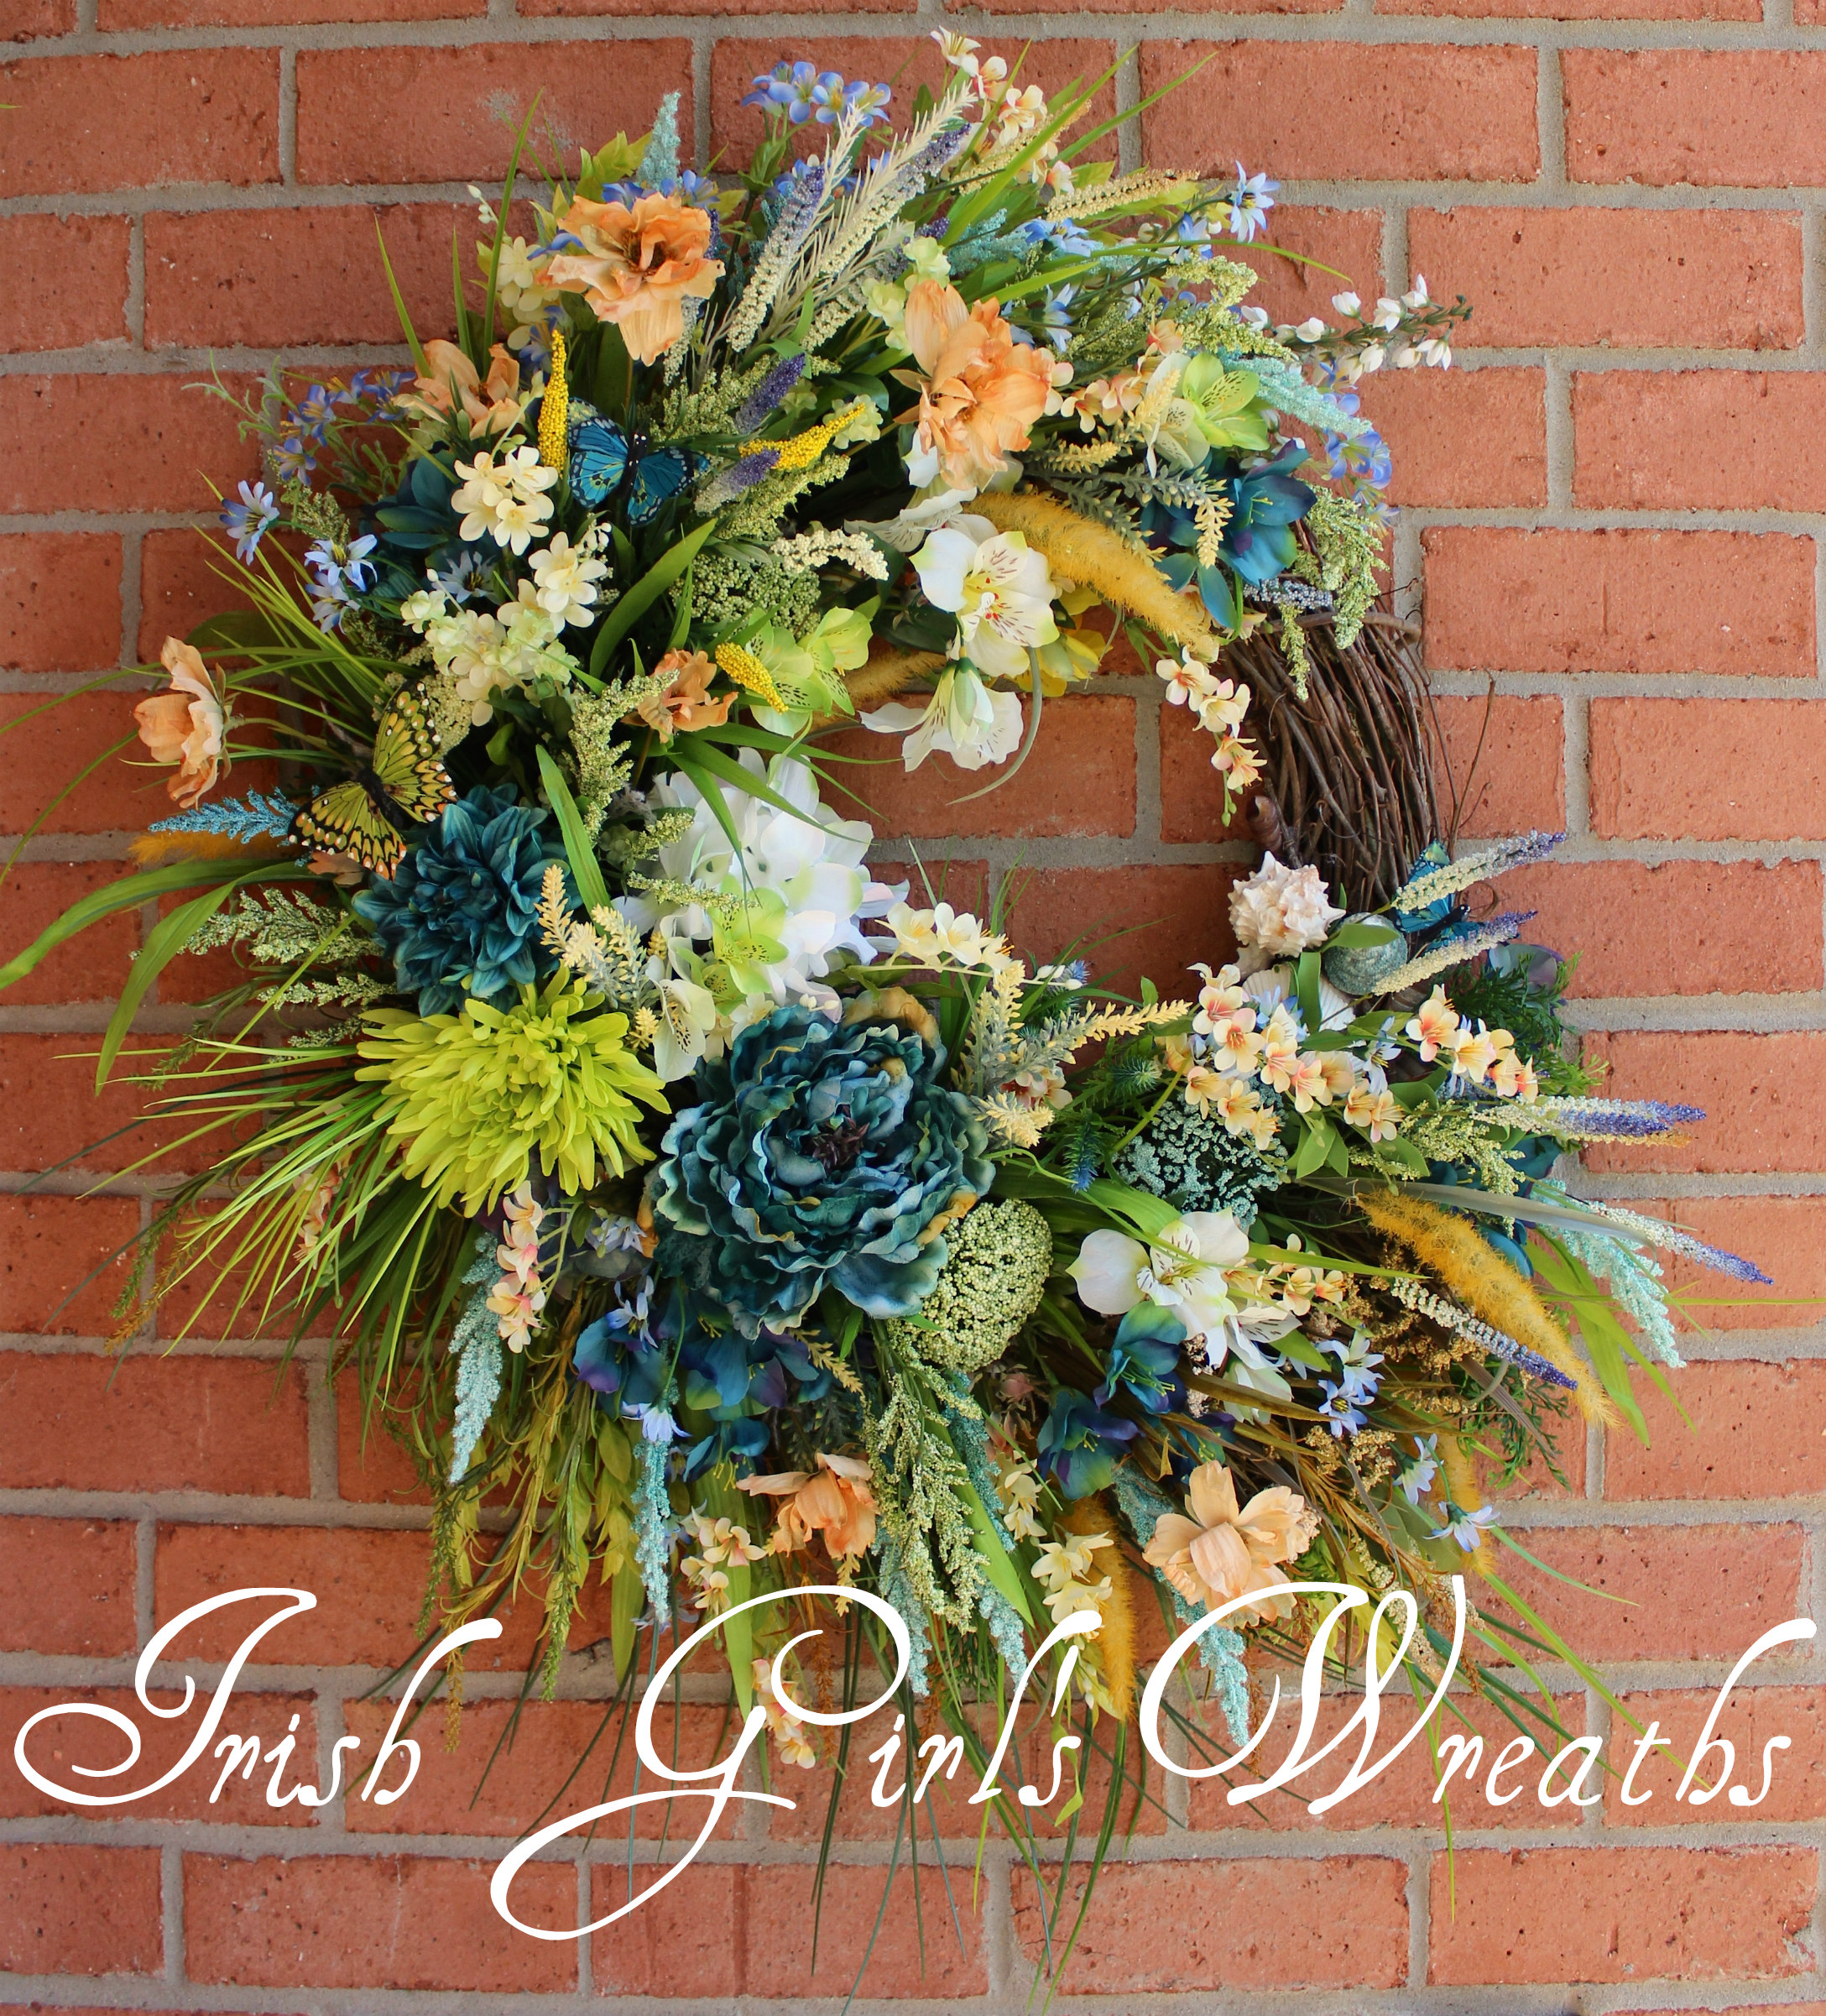 Extra Large Coastal Wreath in teal, green, yellow, peach, white, beach sunrise, turquoise, blue